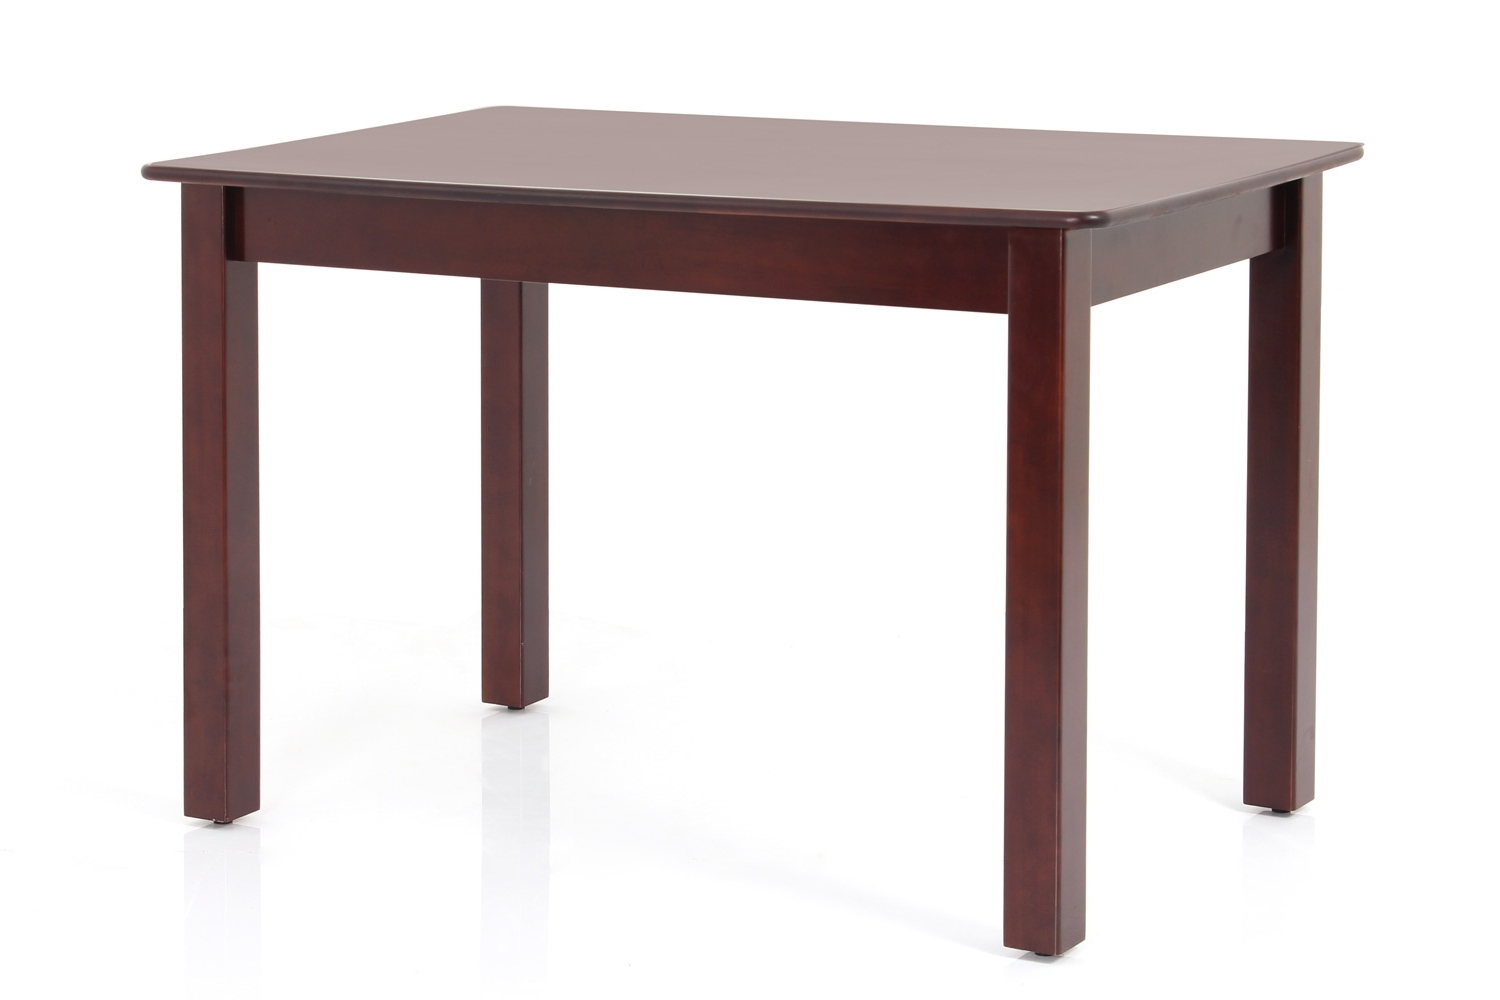 Popular Apple 4 Seater Dining Table In 4 Seat Dining Tables (View 20 of 25)